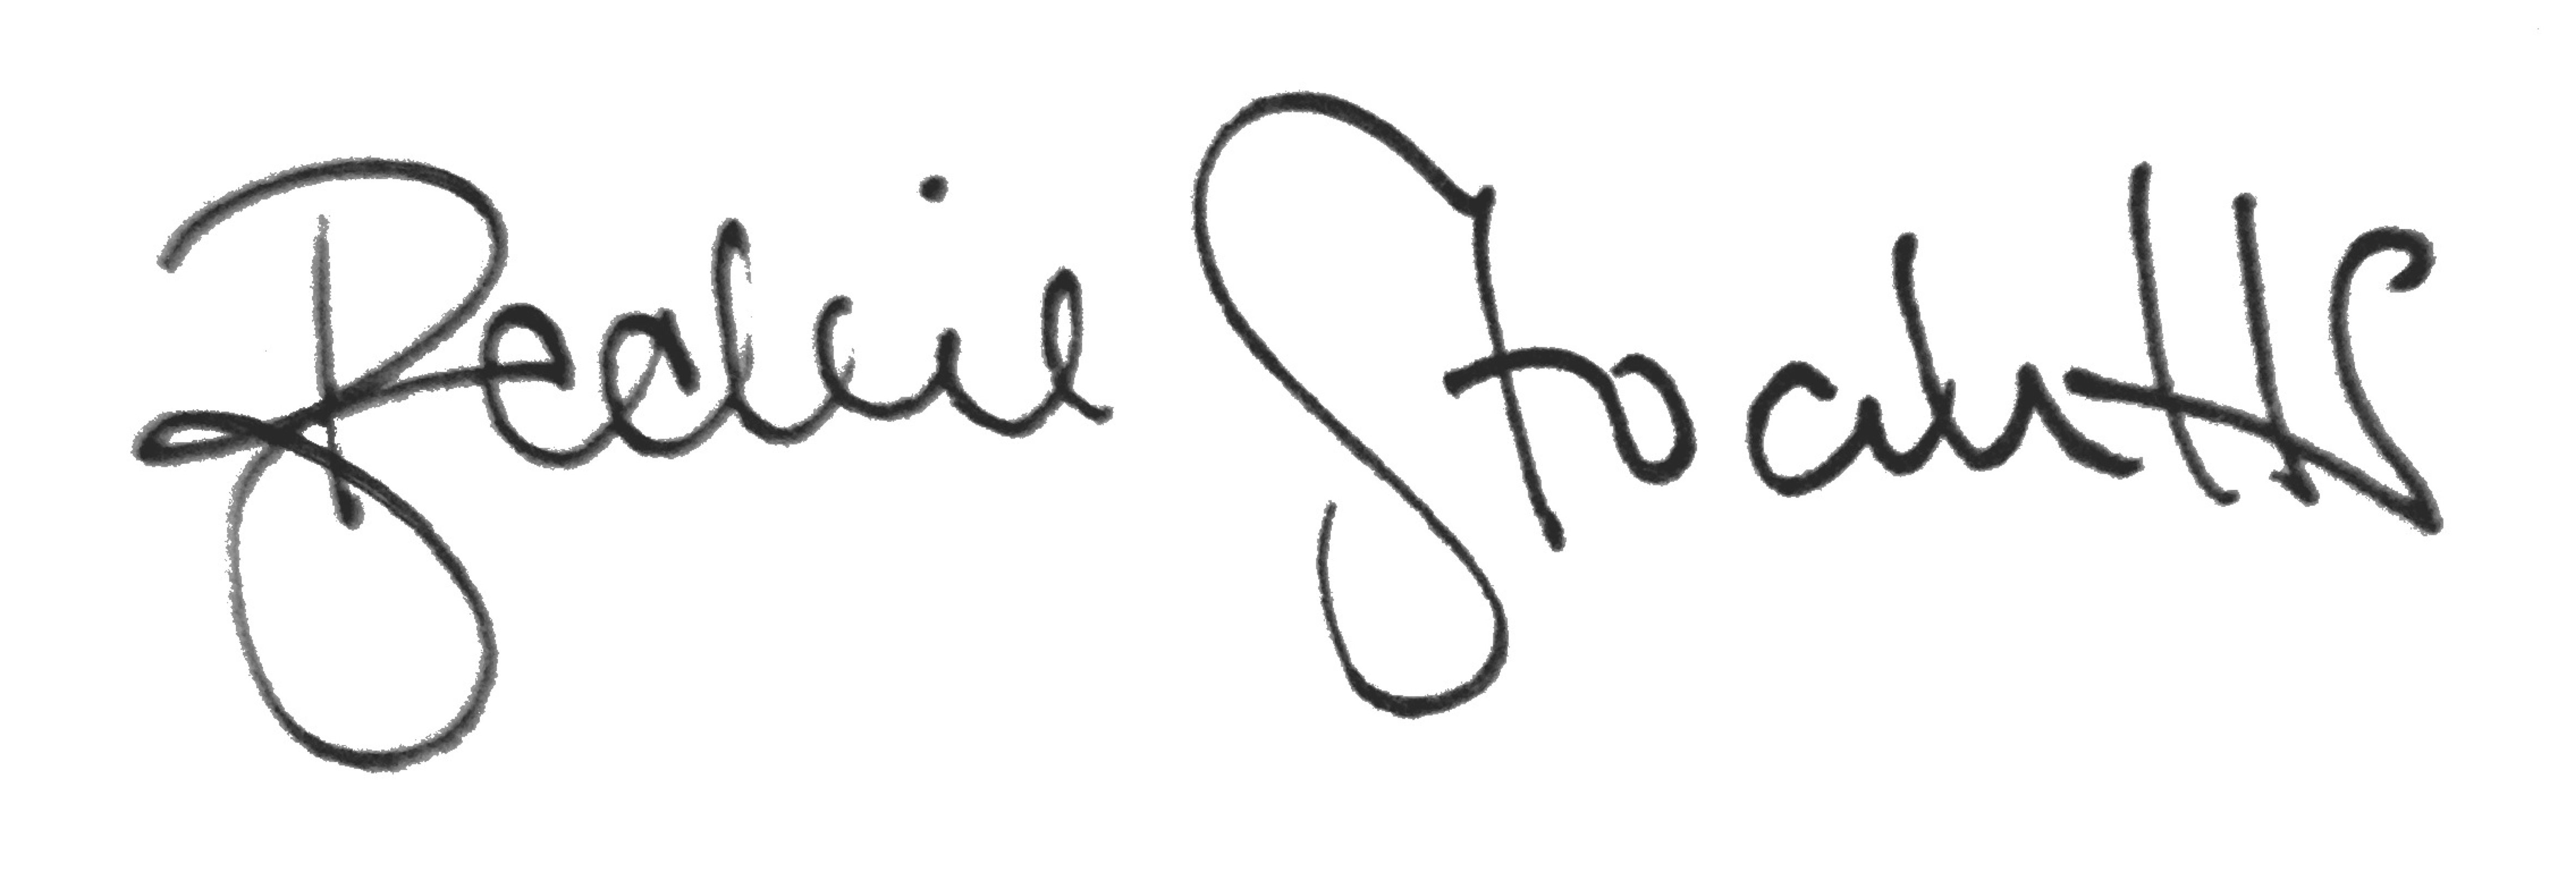 beckie_signature.png?1584484239